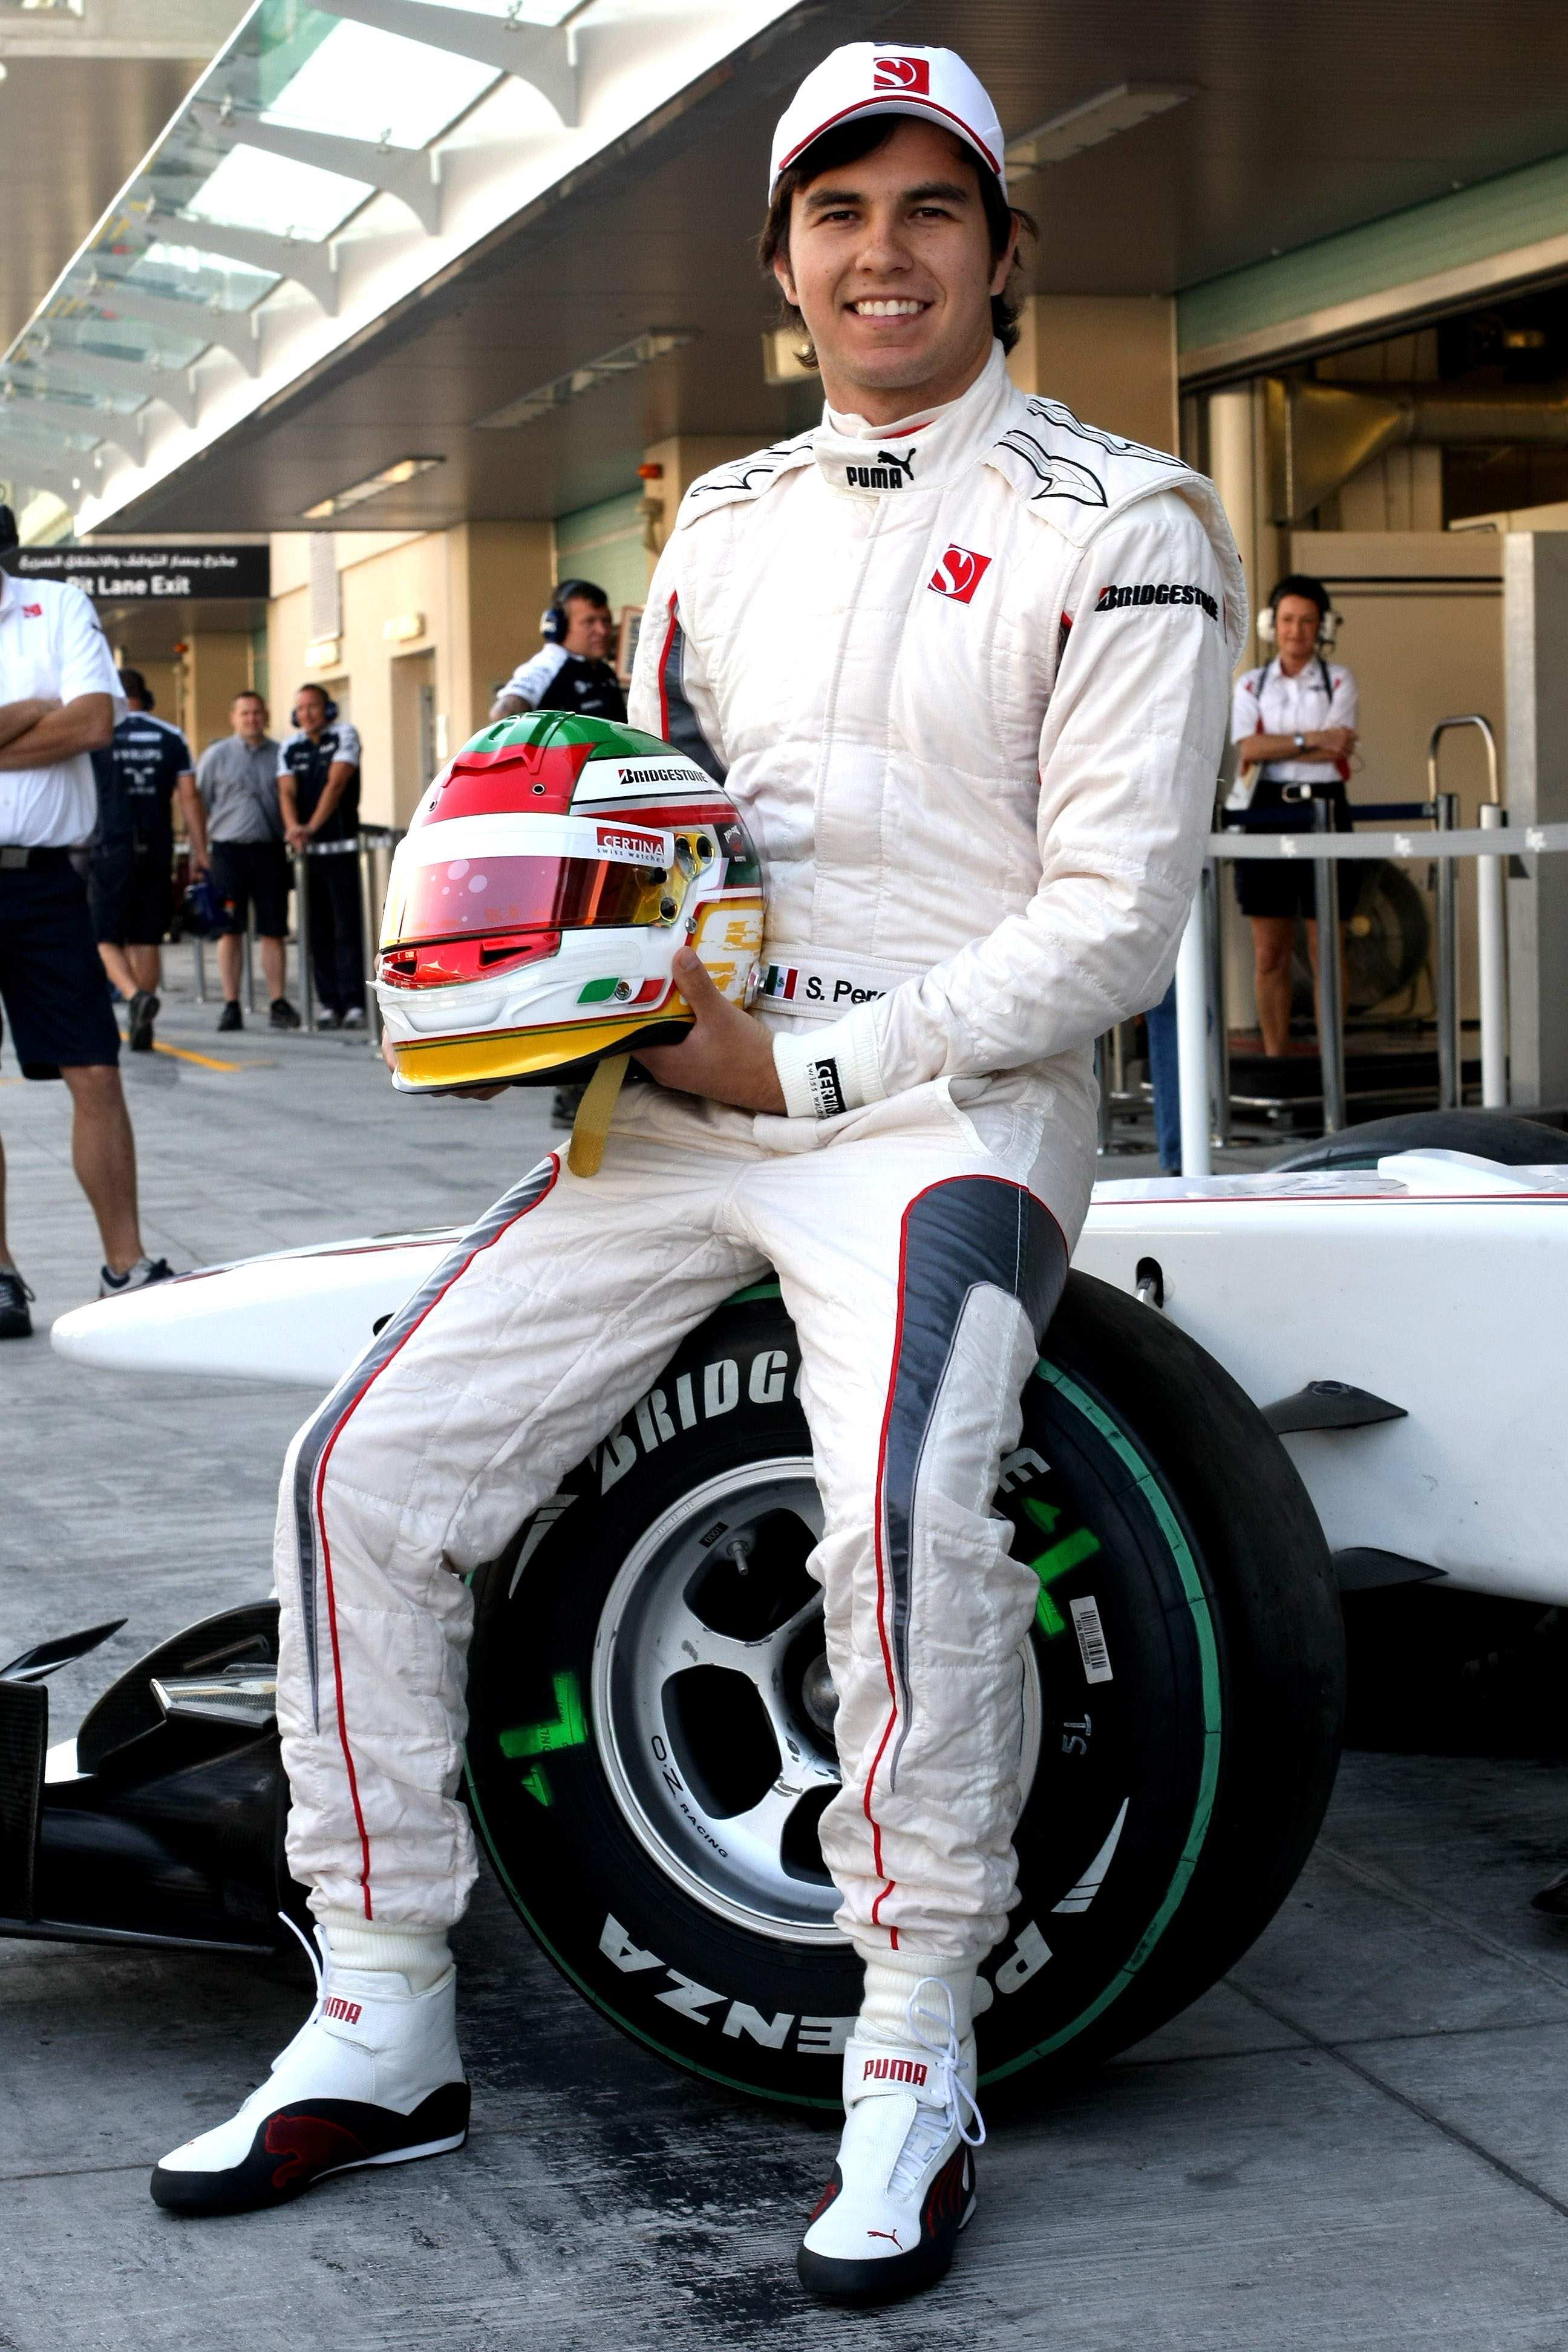 ABU DHABI, UNITED ARAB EMIRATES - NOVEMBER 17:  Sergio Perez of Mexico and Sauber F1 Team during the Young Driver Testing at the Yas Marina Circuit on November 17, 2010 in Abu Dhabi, United Arab Emirates.  (Photo by Andrew Hone/Getty Images)